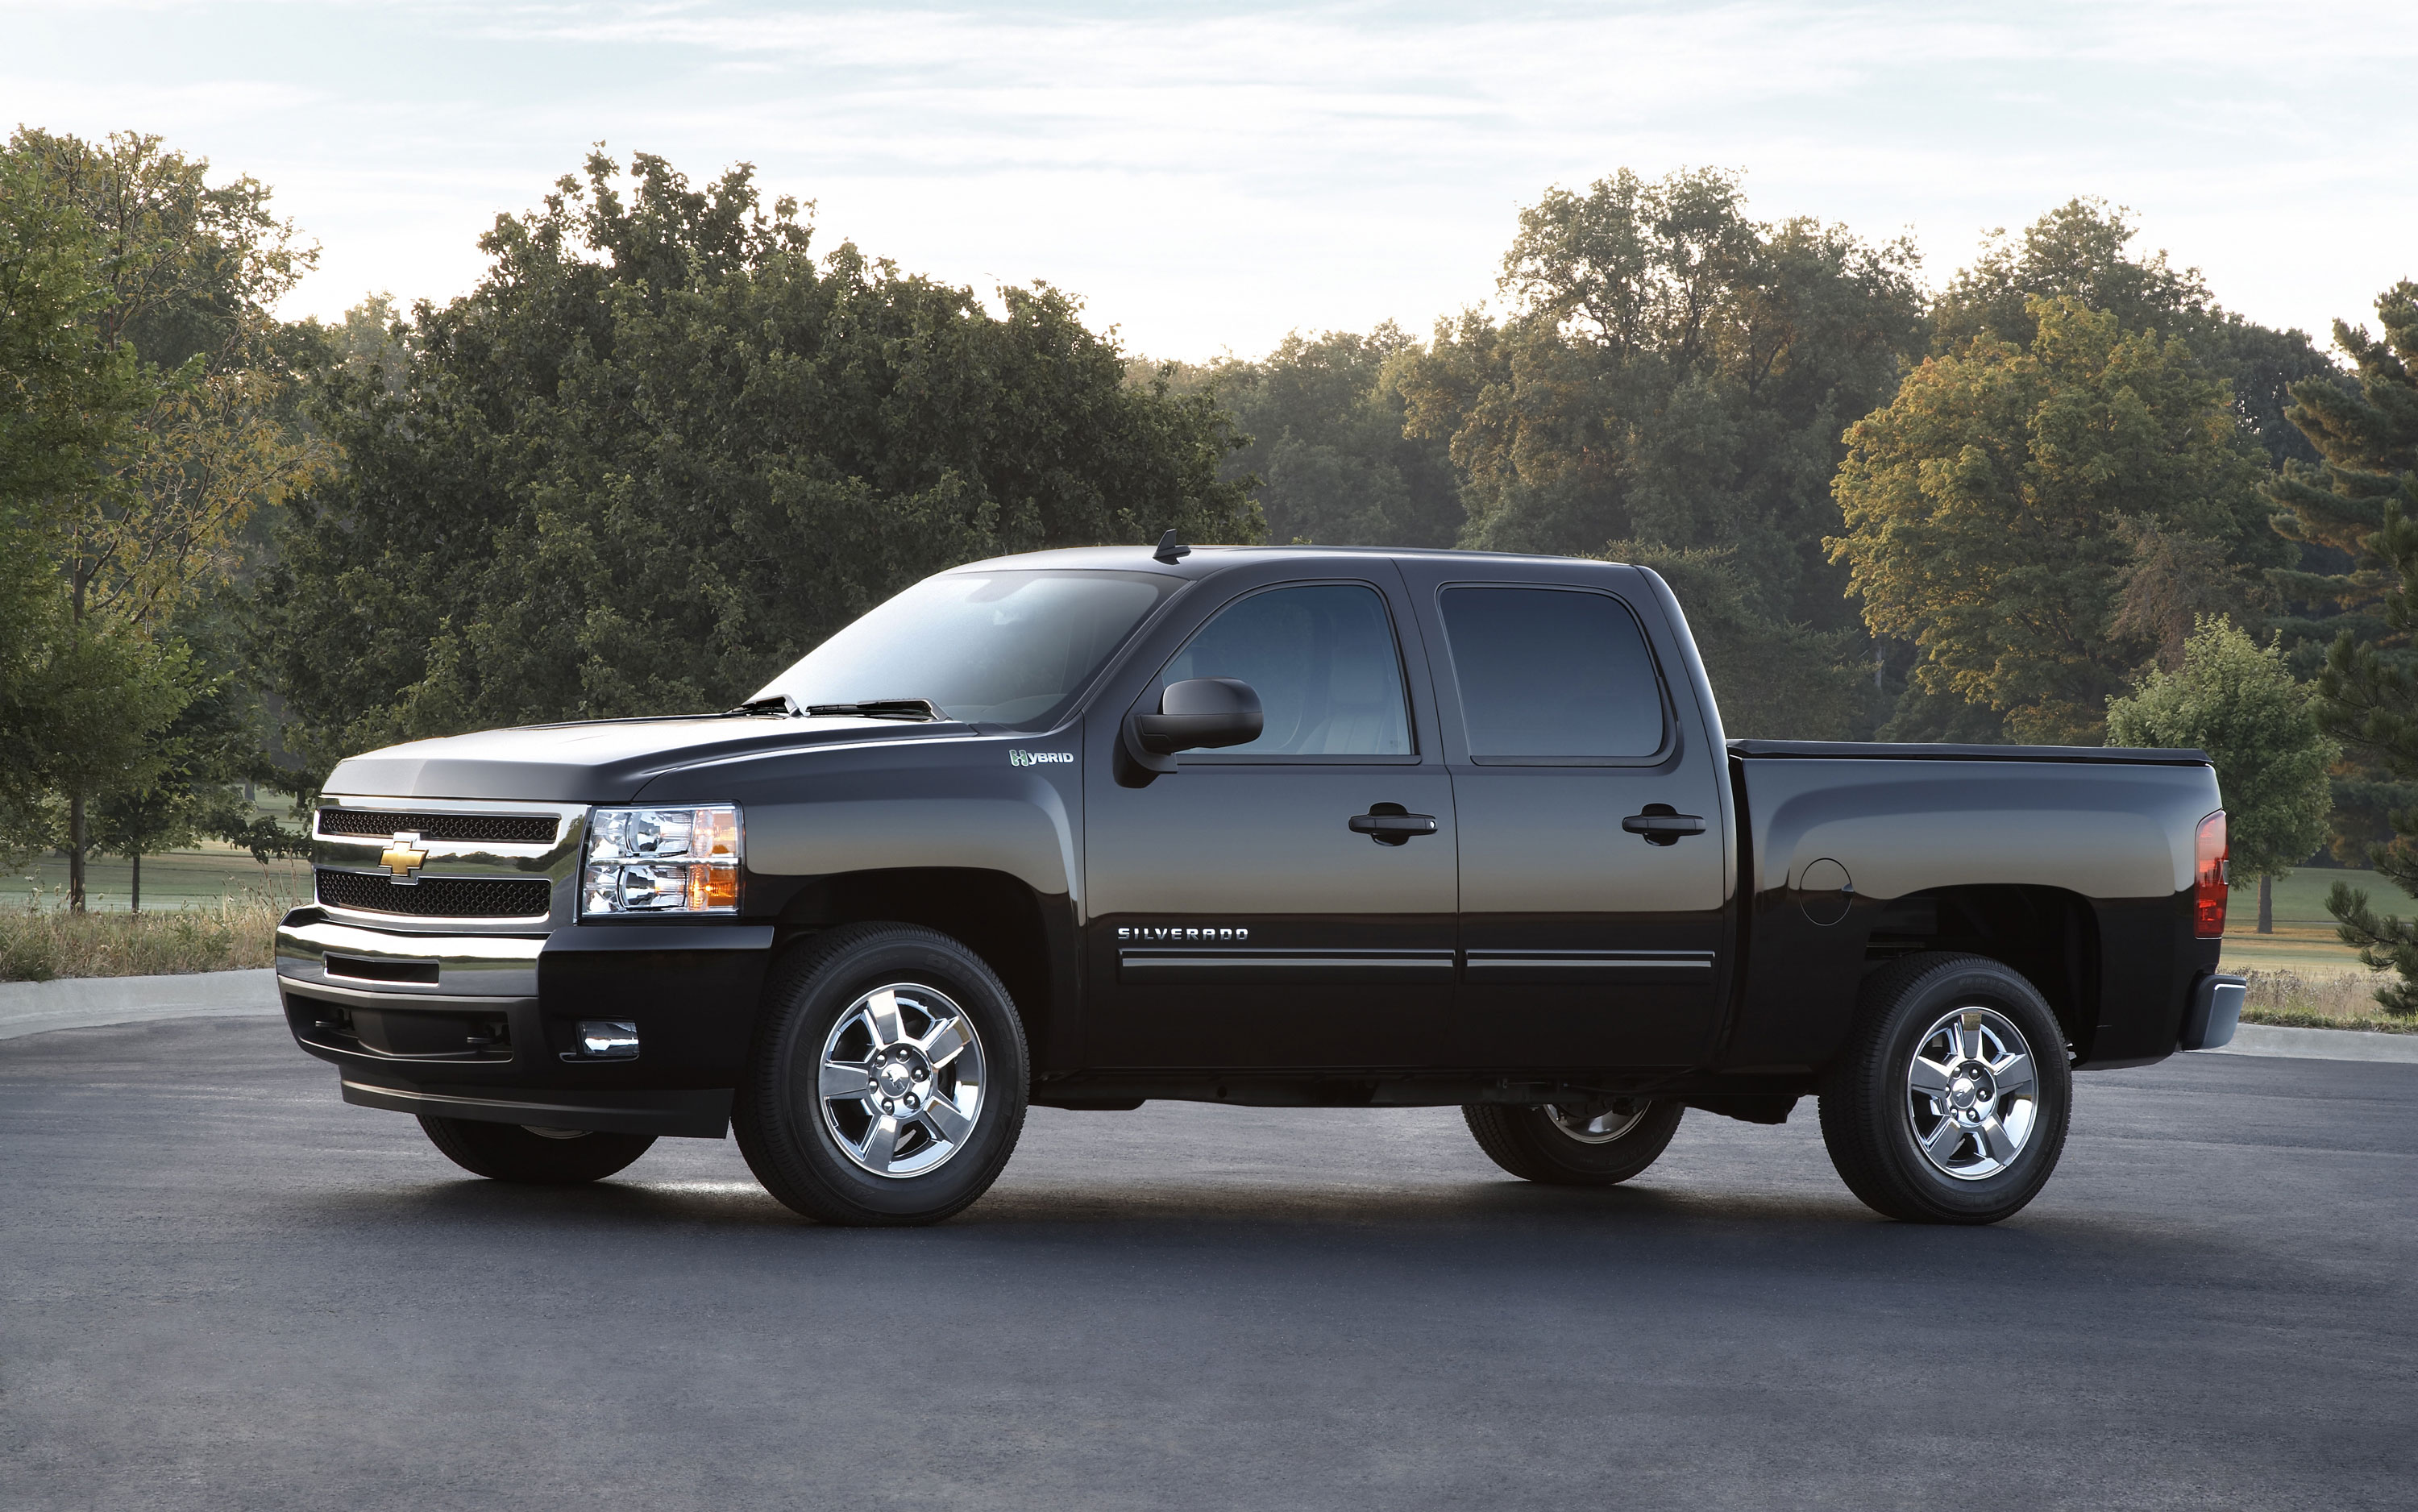 2011 Chevy Silverado Side Shot1